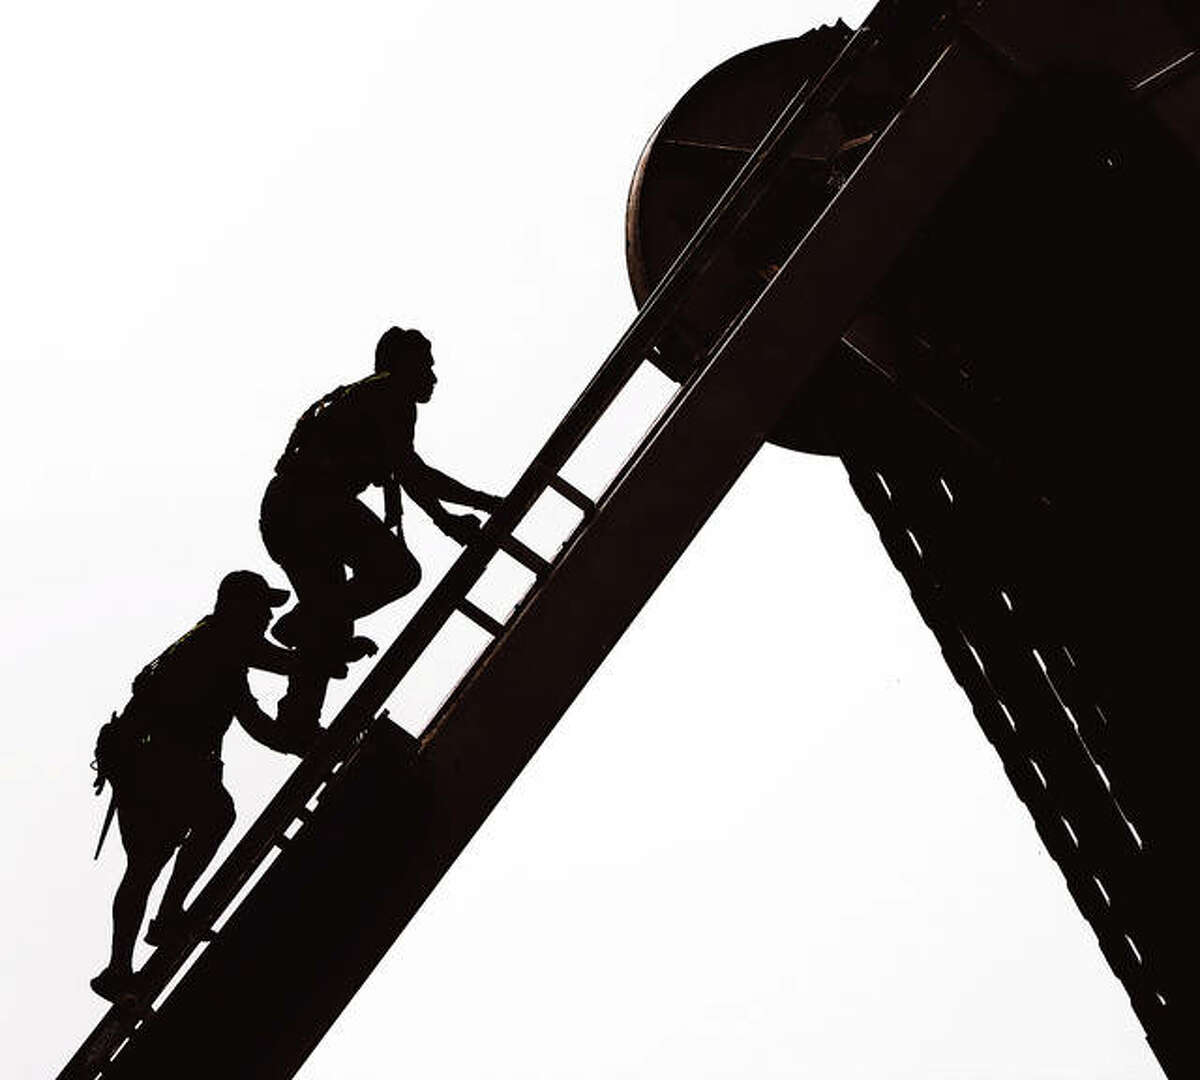 Two workers are silhouetted by the hazy skies Tuesday morning as they climb to the center of the Luehrs' giant ferris wheel to start unfolding the sections like the spokes on a bicycle.